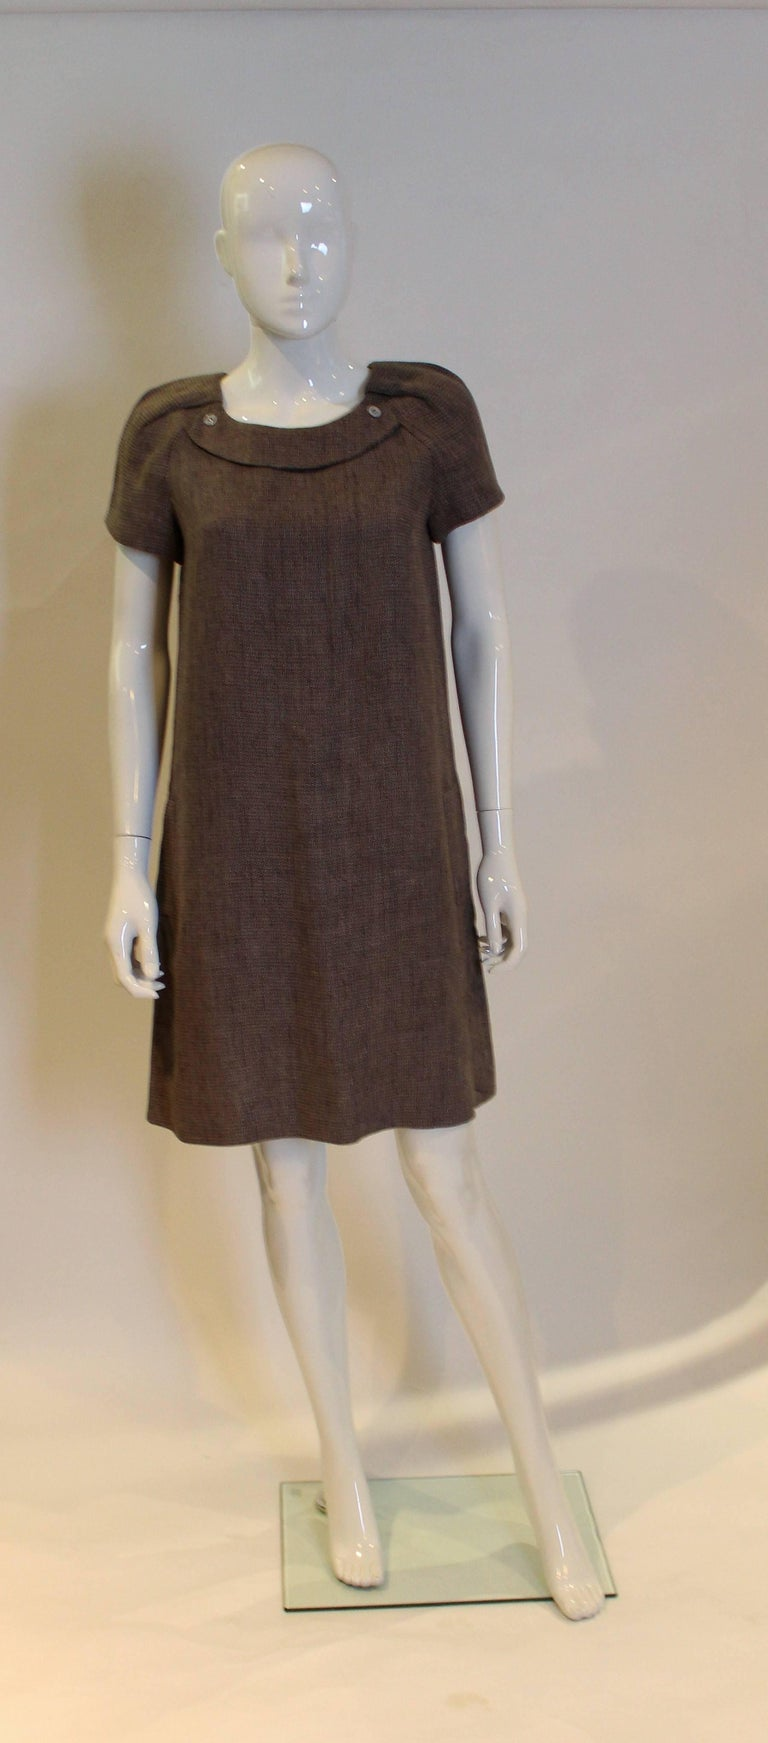 A great little black dress for Spring/Summer by Chloe. In a cotton /linen mix and fully lined, this dress has a round neck, short sleeves and two pockets. It opens with a beautifuly hidded zip at the back.